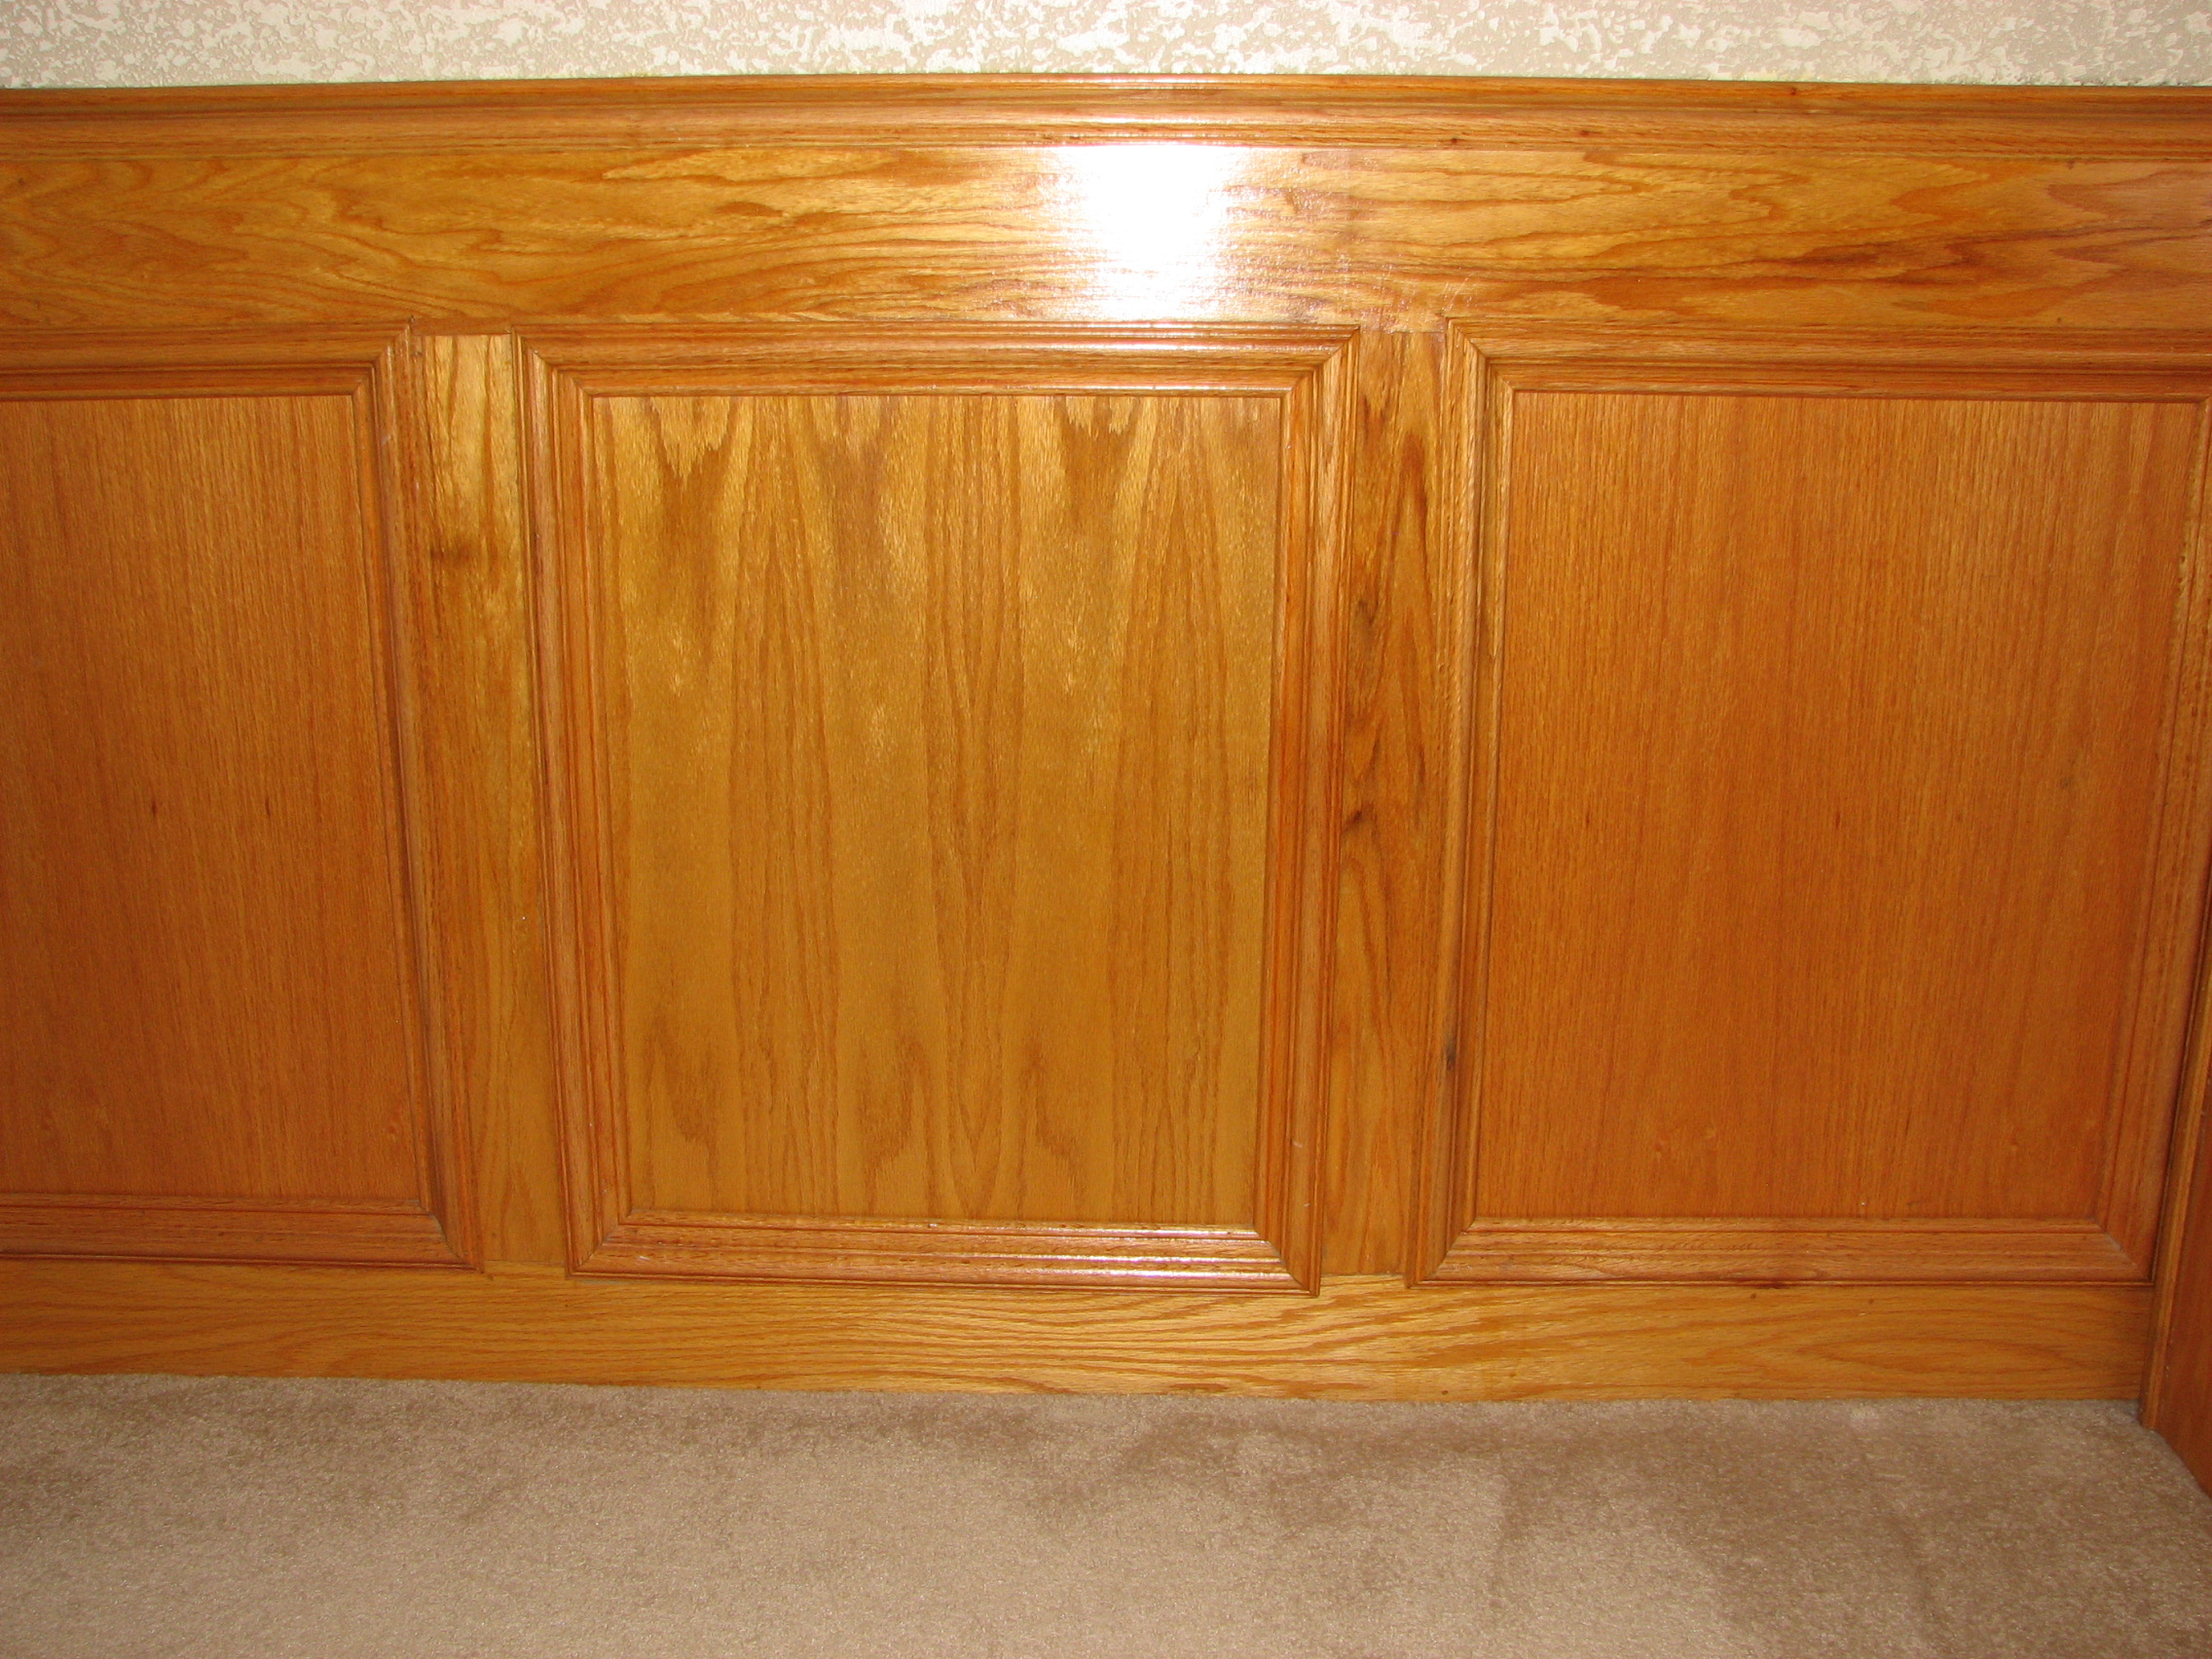 Chair rails and raised panel walls